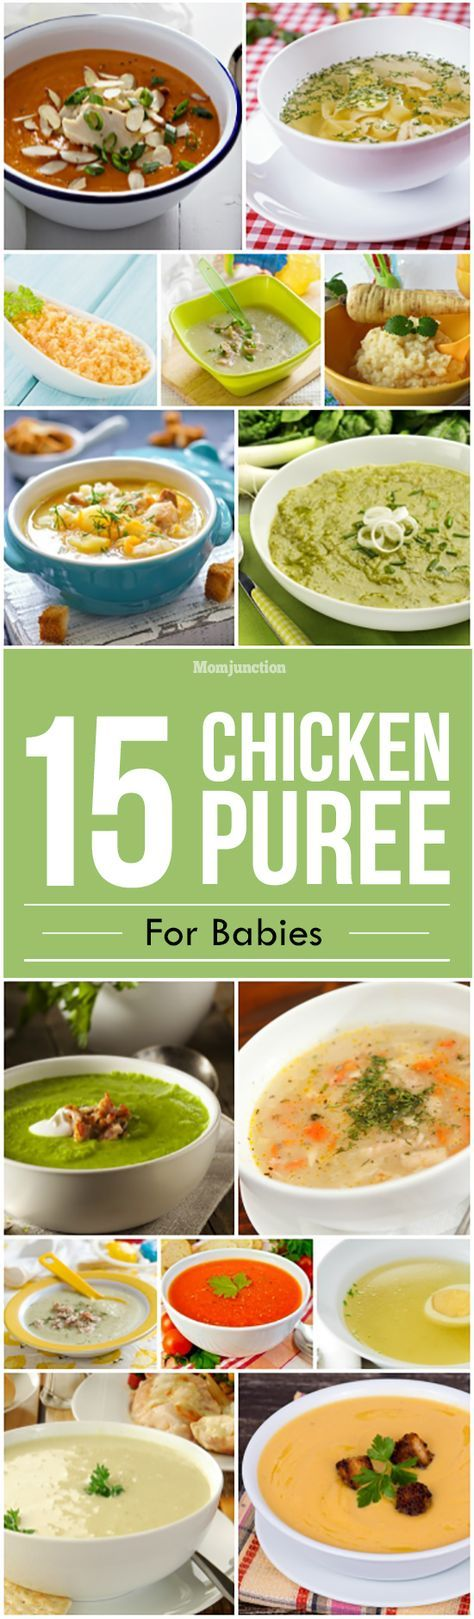 11 Quick Simple Chicken Recipes For Babies Baby Stuff